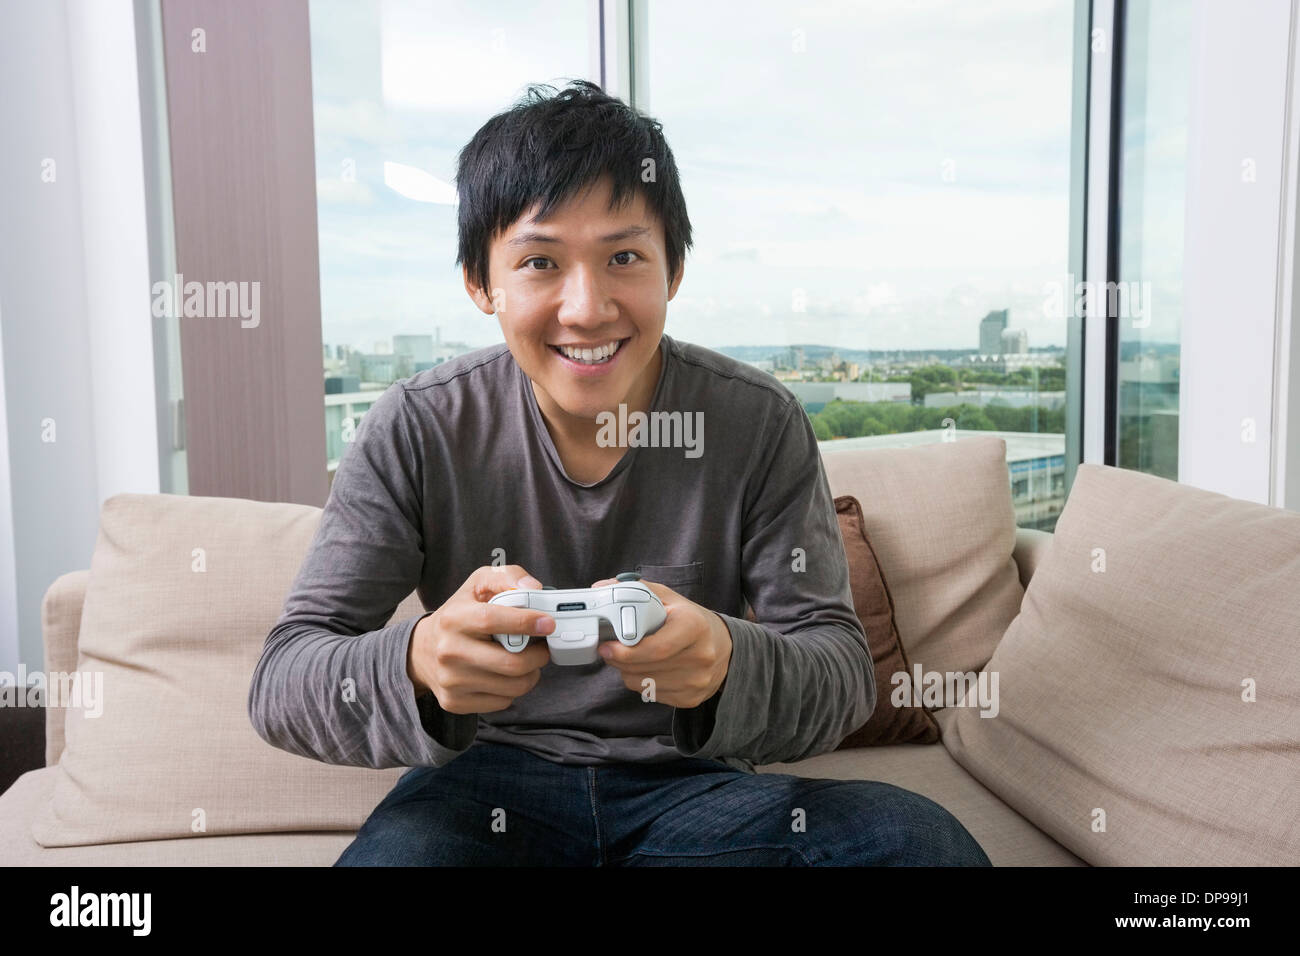 Excited mid adult man playing video game on sofa - Stock Image